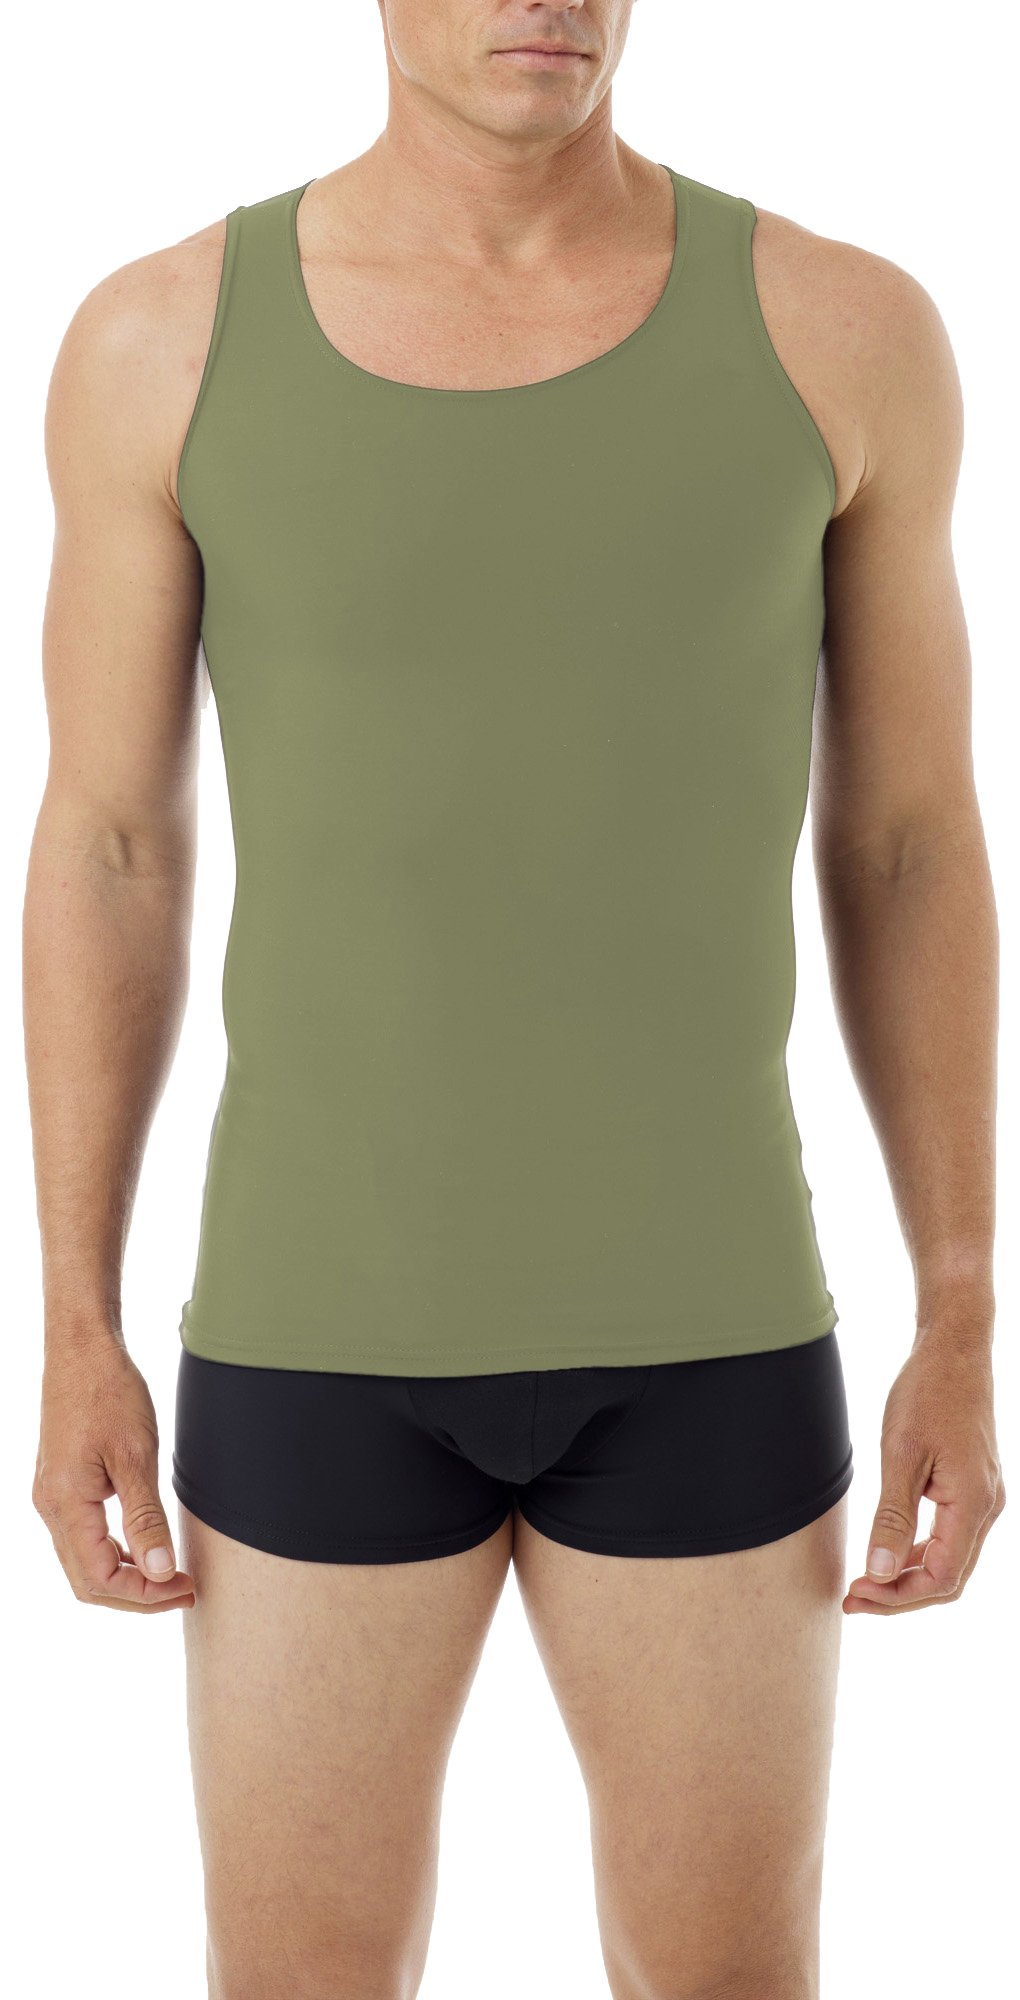 Underworks Mens Microfiber Compression Tank, Small, Khaki by Underworks (Image #1)